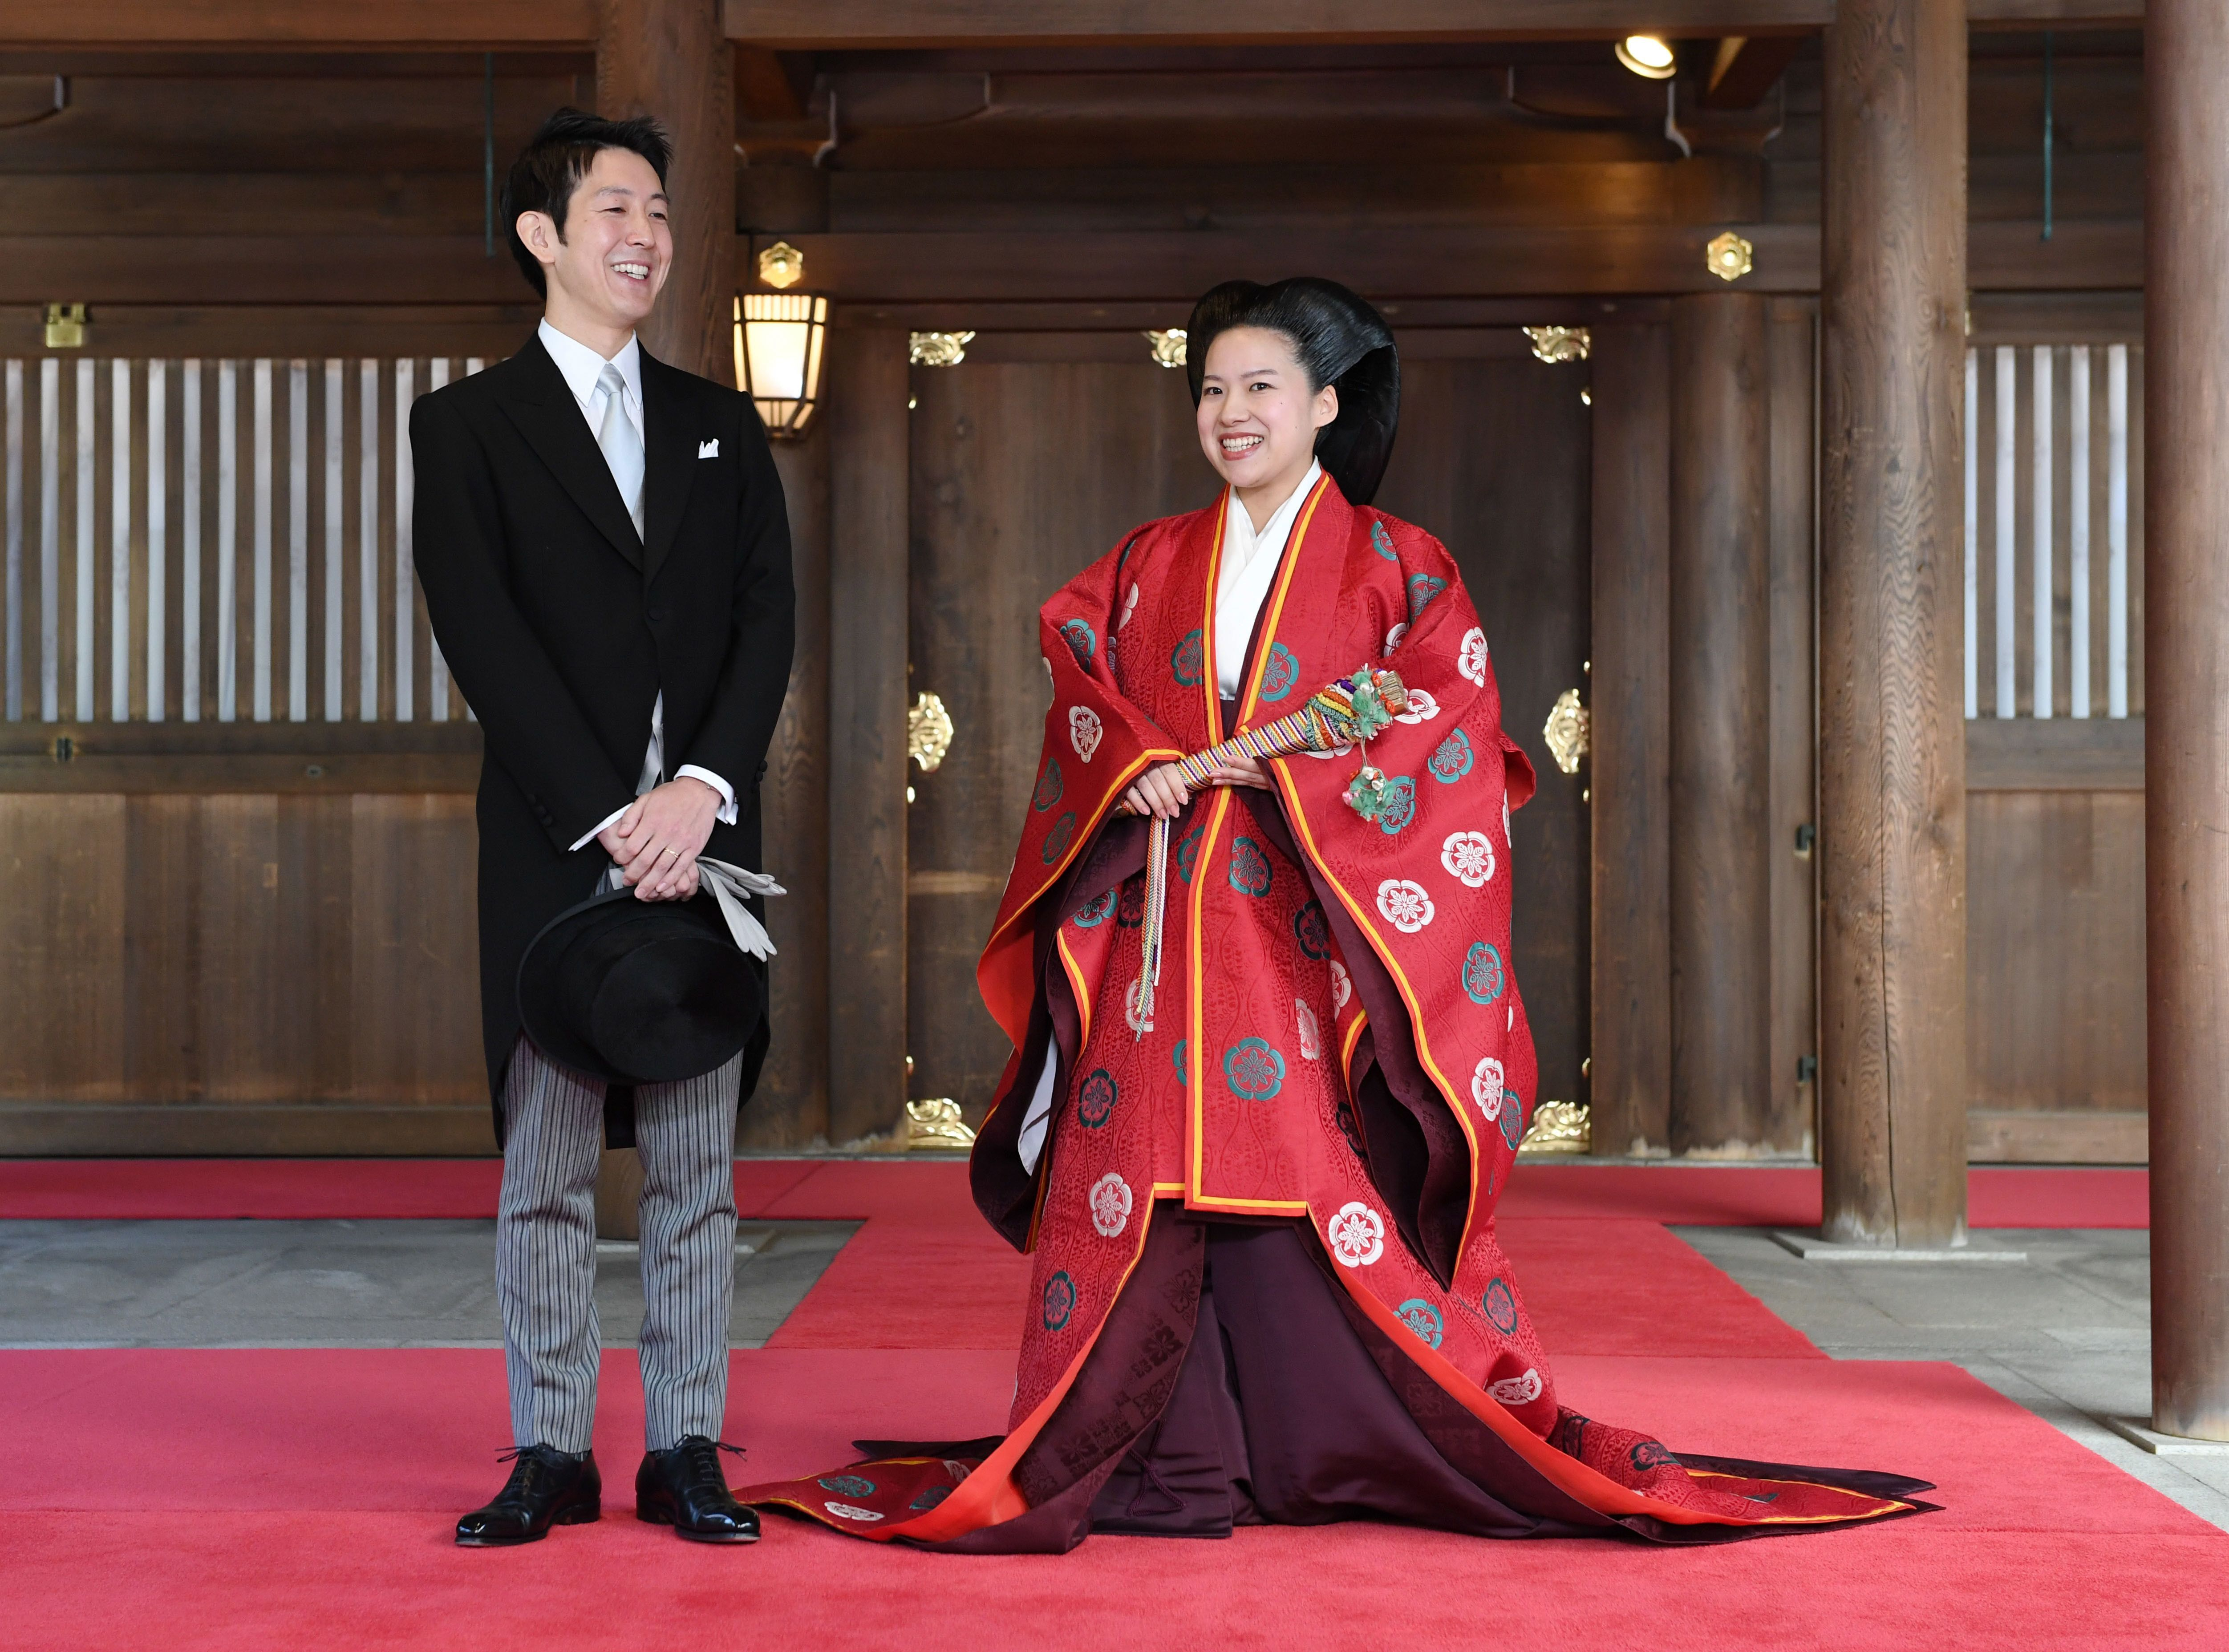 After renouncing her royal title , Princess Ayako married Kei Moriya in a private ceremony in Tokyo on October 29.